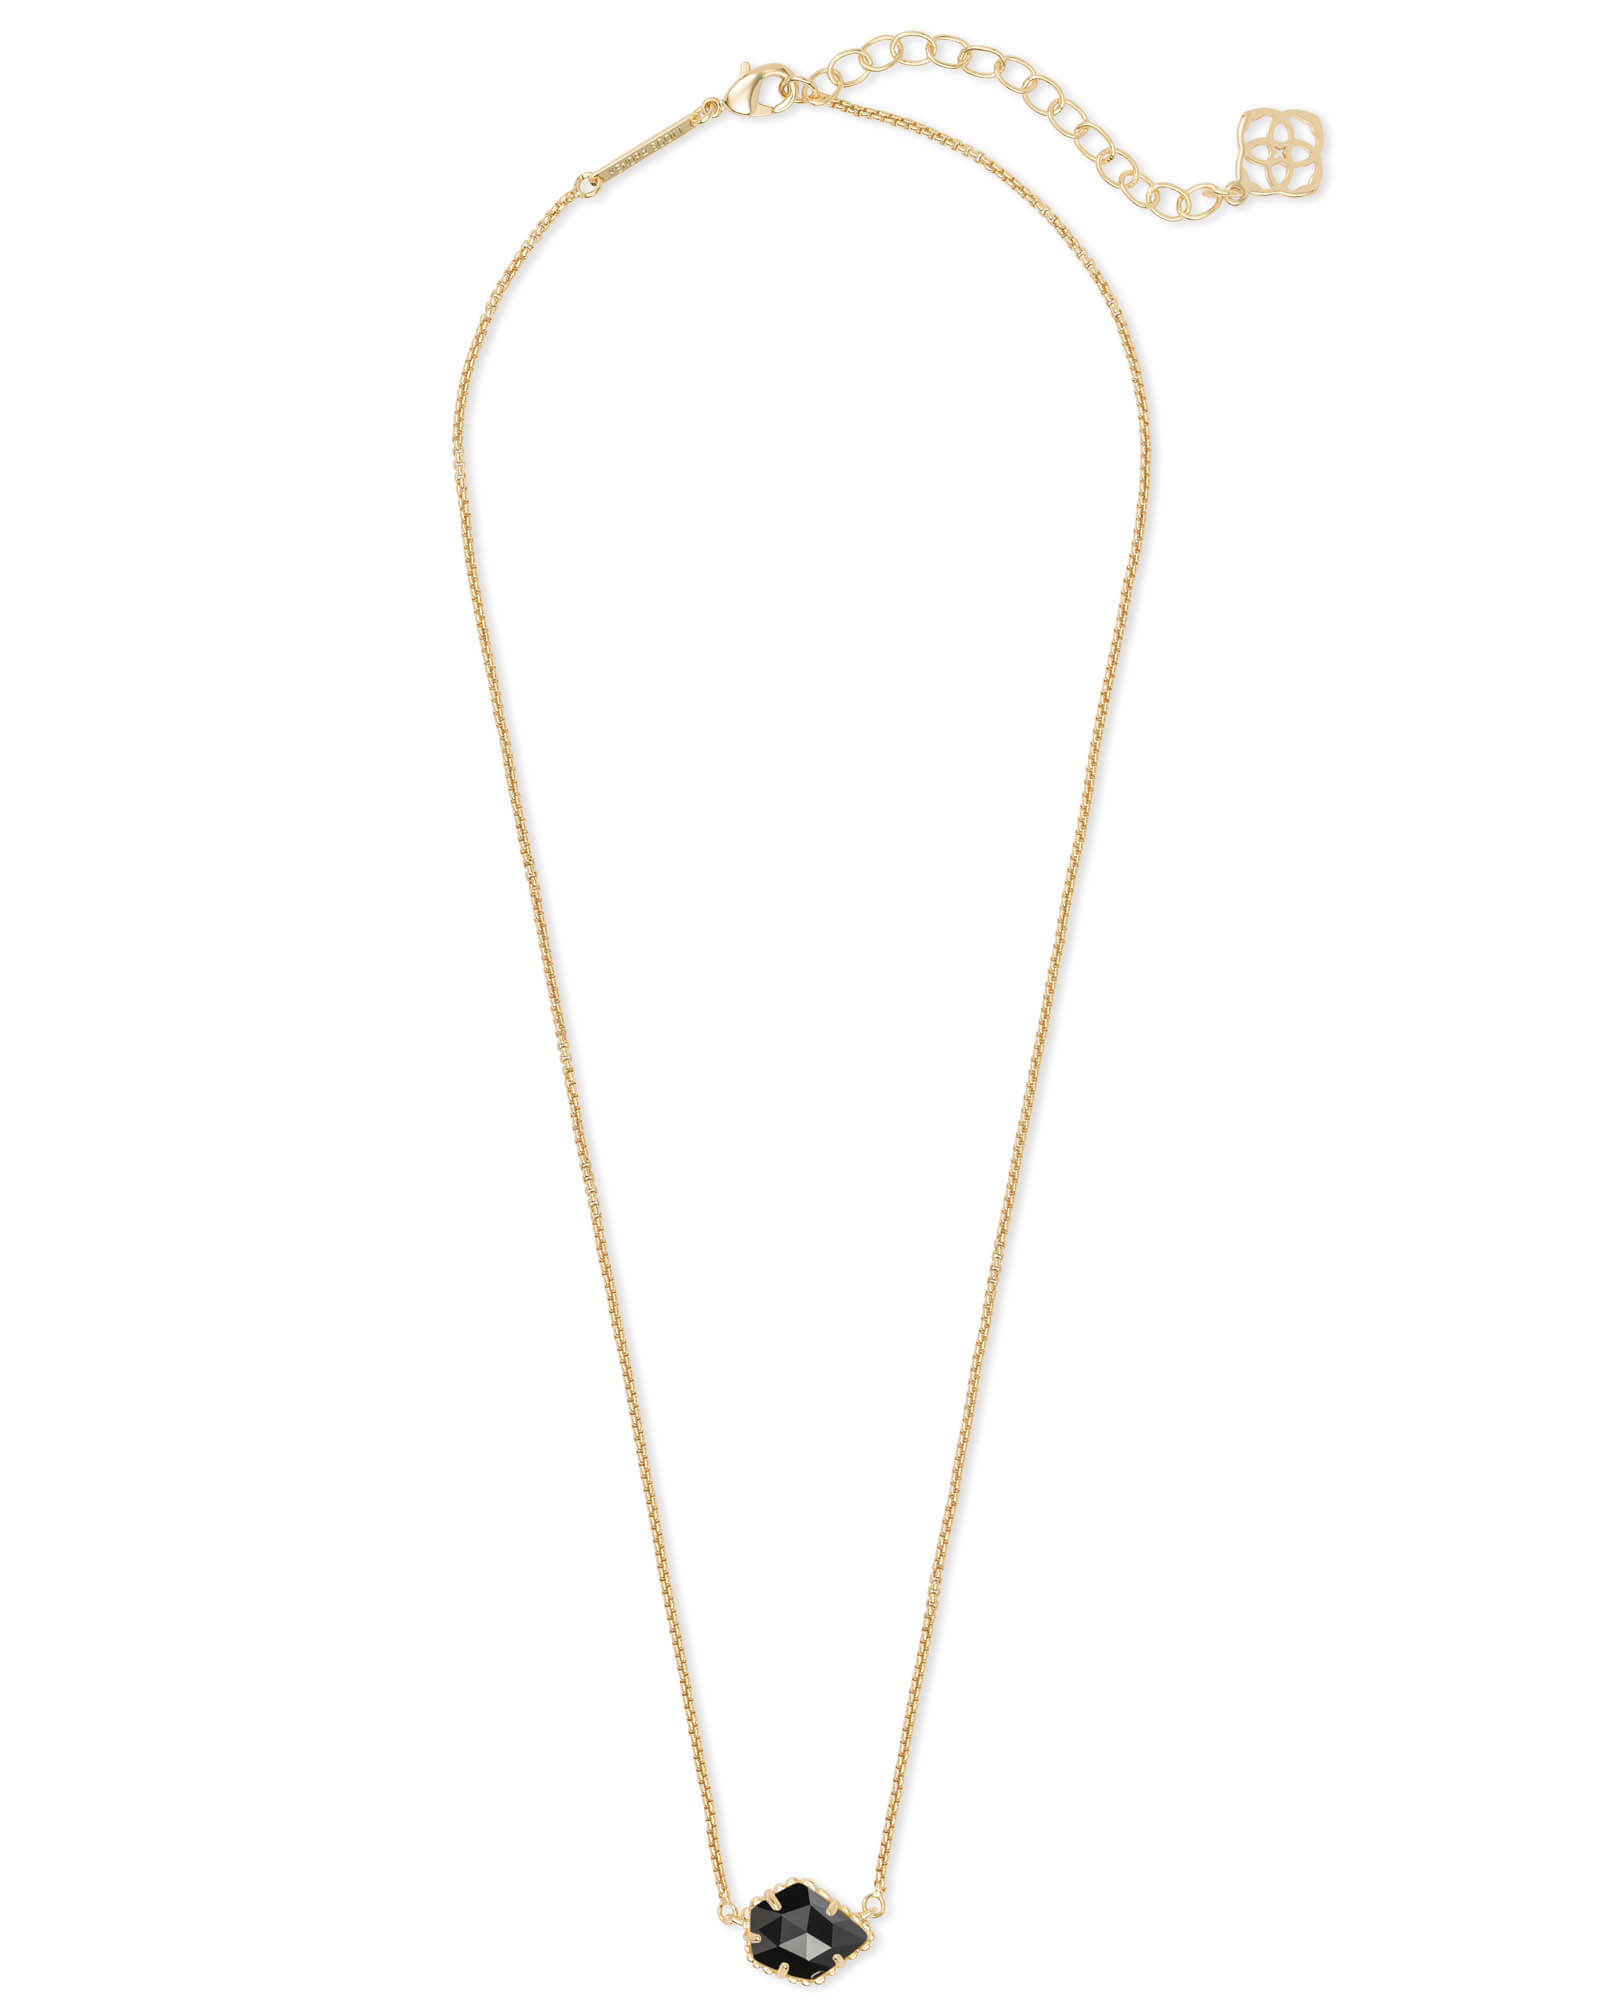 Tess Gold Small Pendant Necklace In Black Opaque Glass